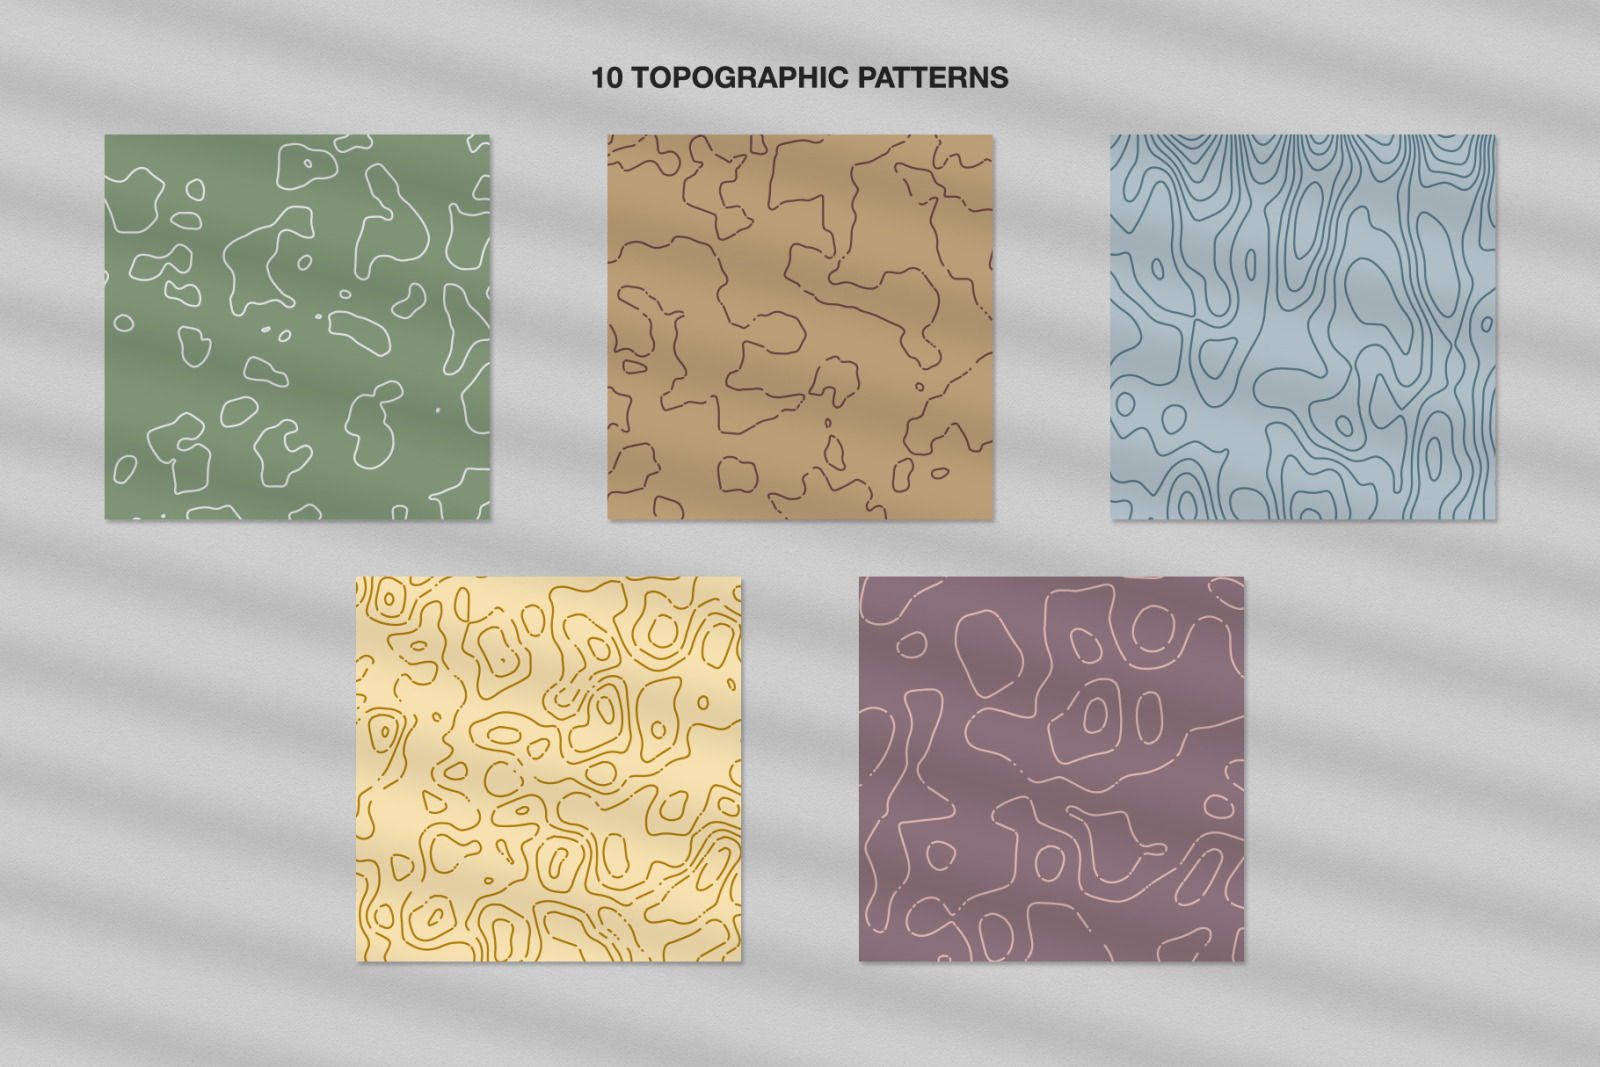 Topographic Patterns